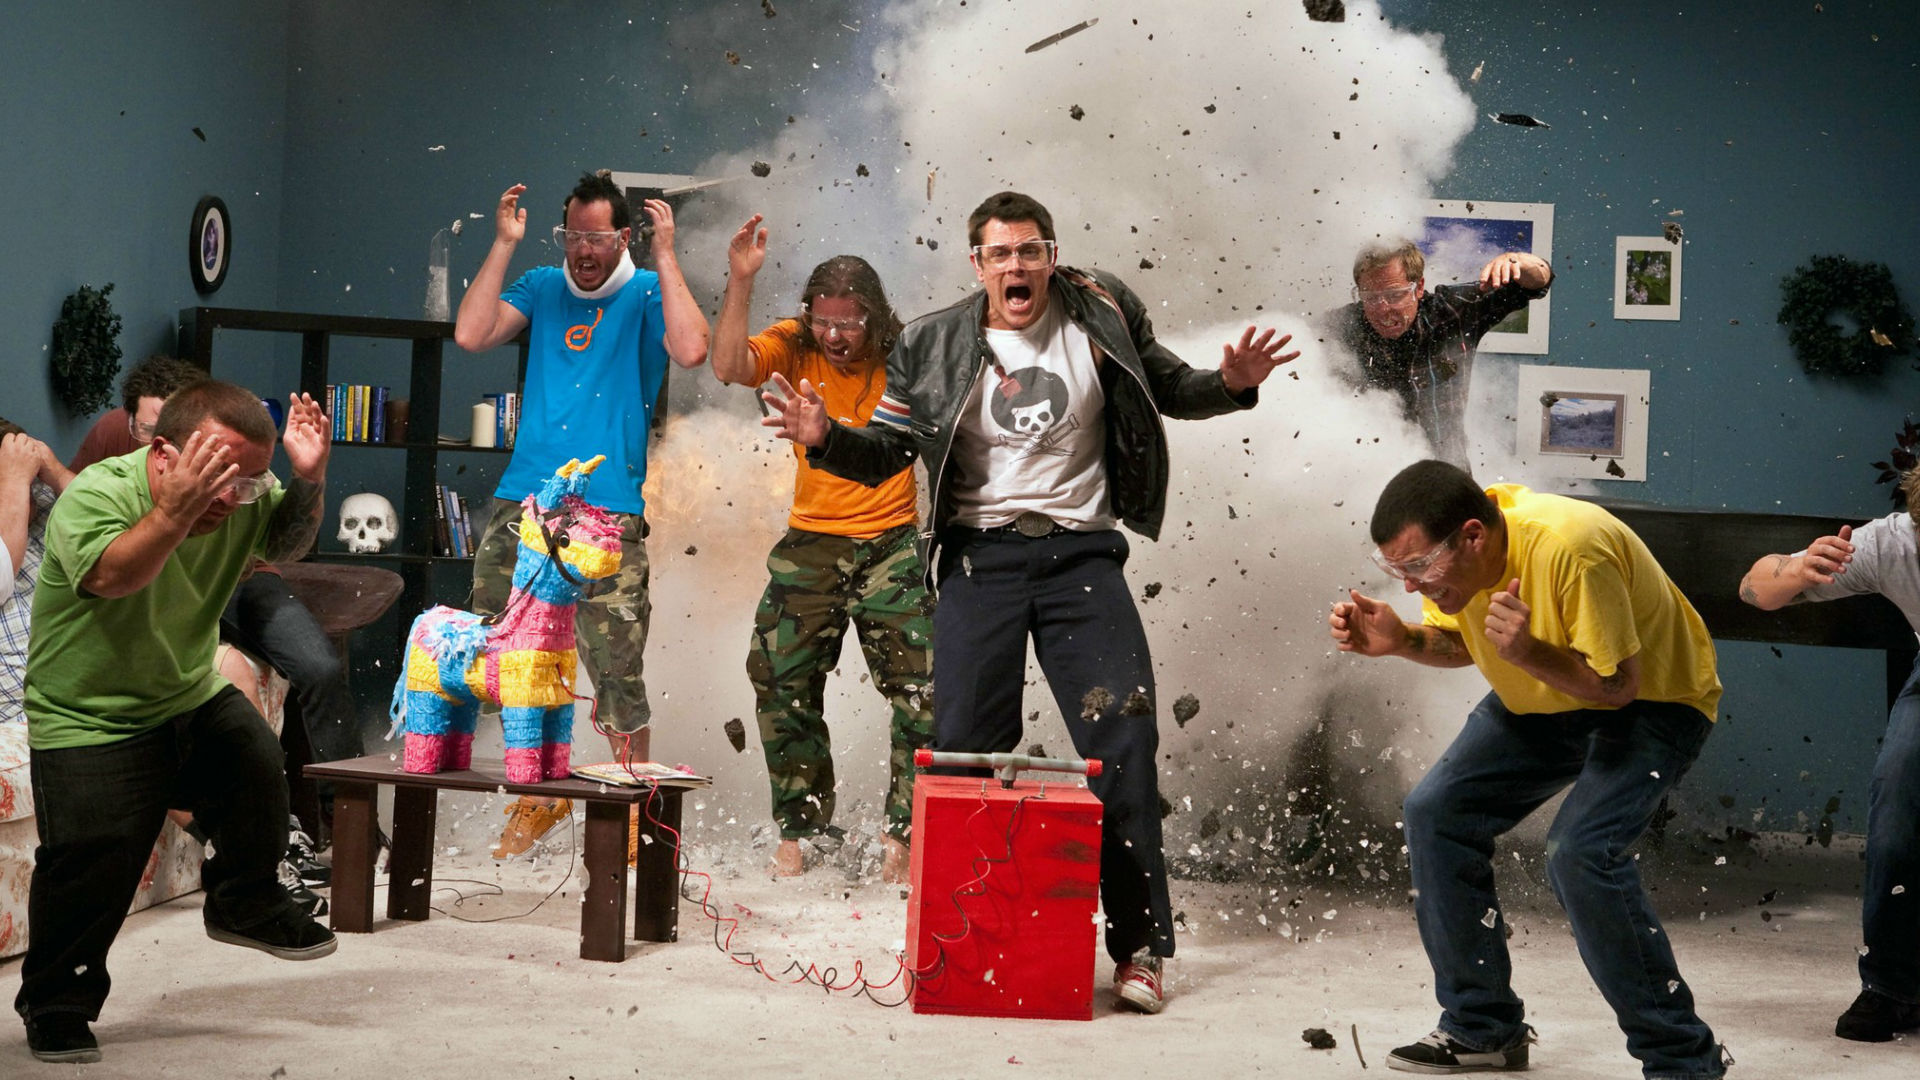 Steve-O and the Jackass gang